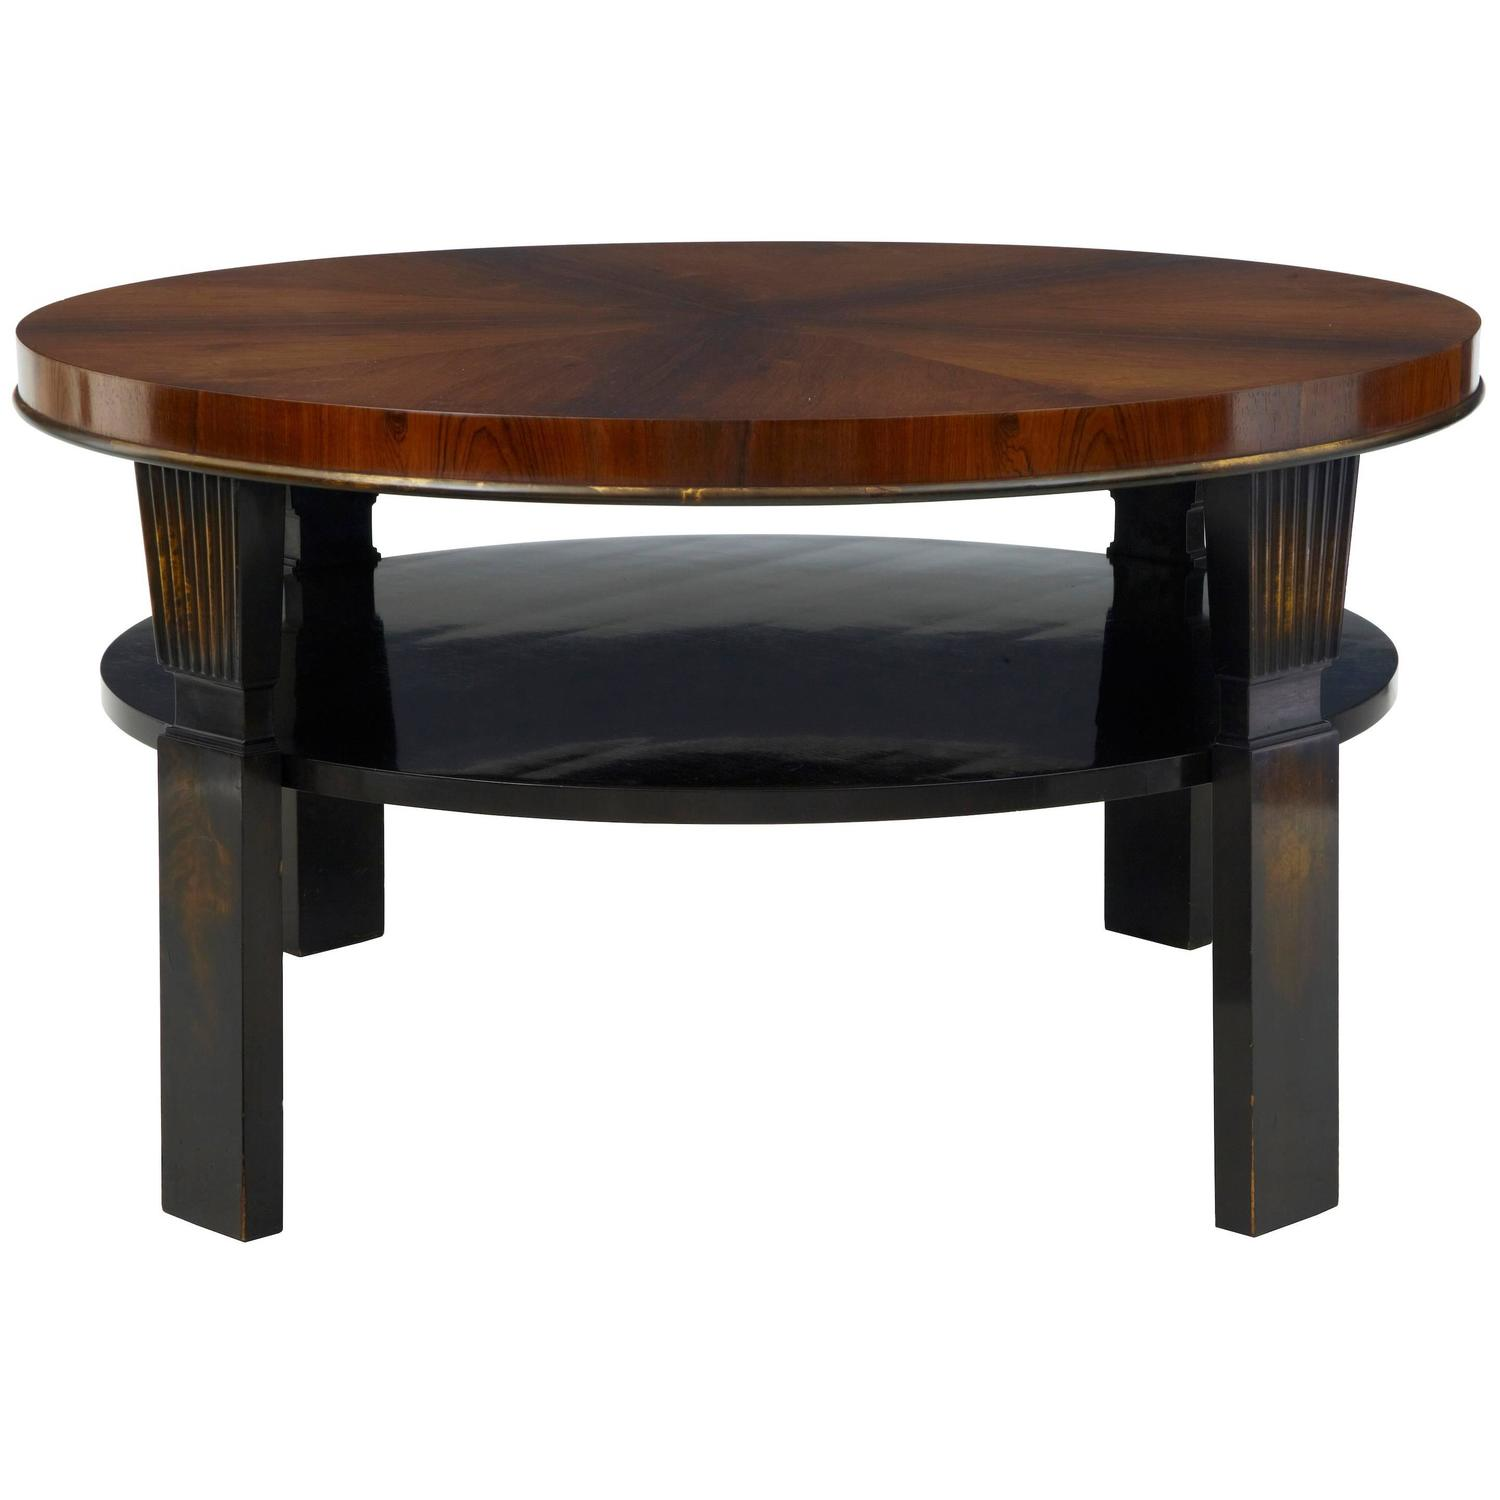 20th Century Art Deco Large Rosewood Birch Coffee Table For Sale At 1stdibs